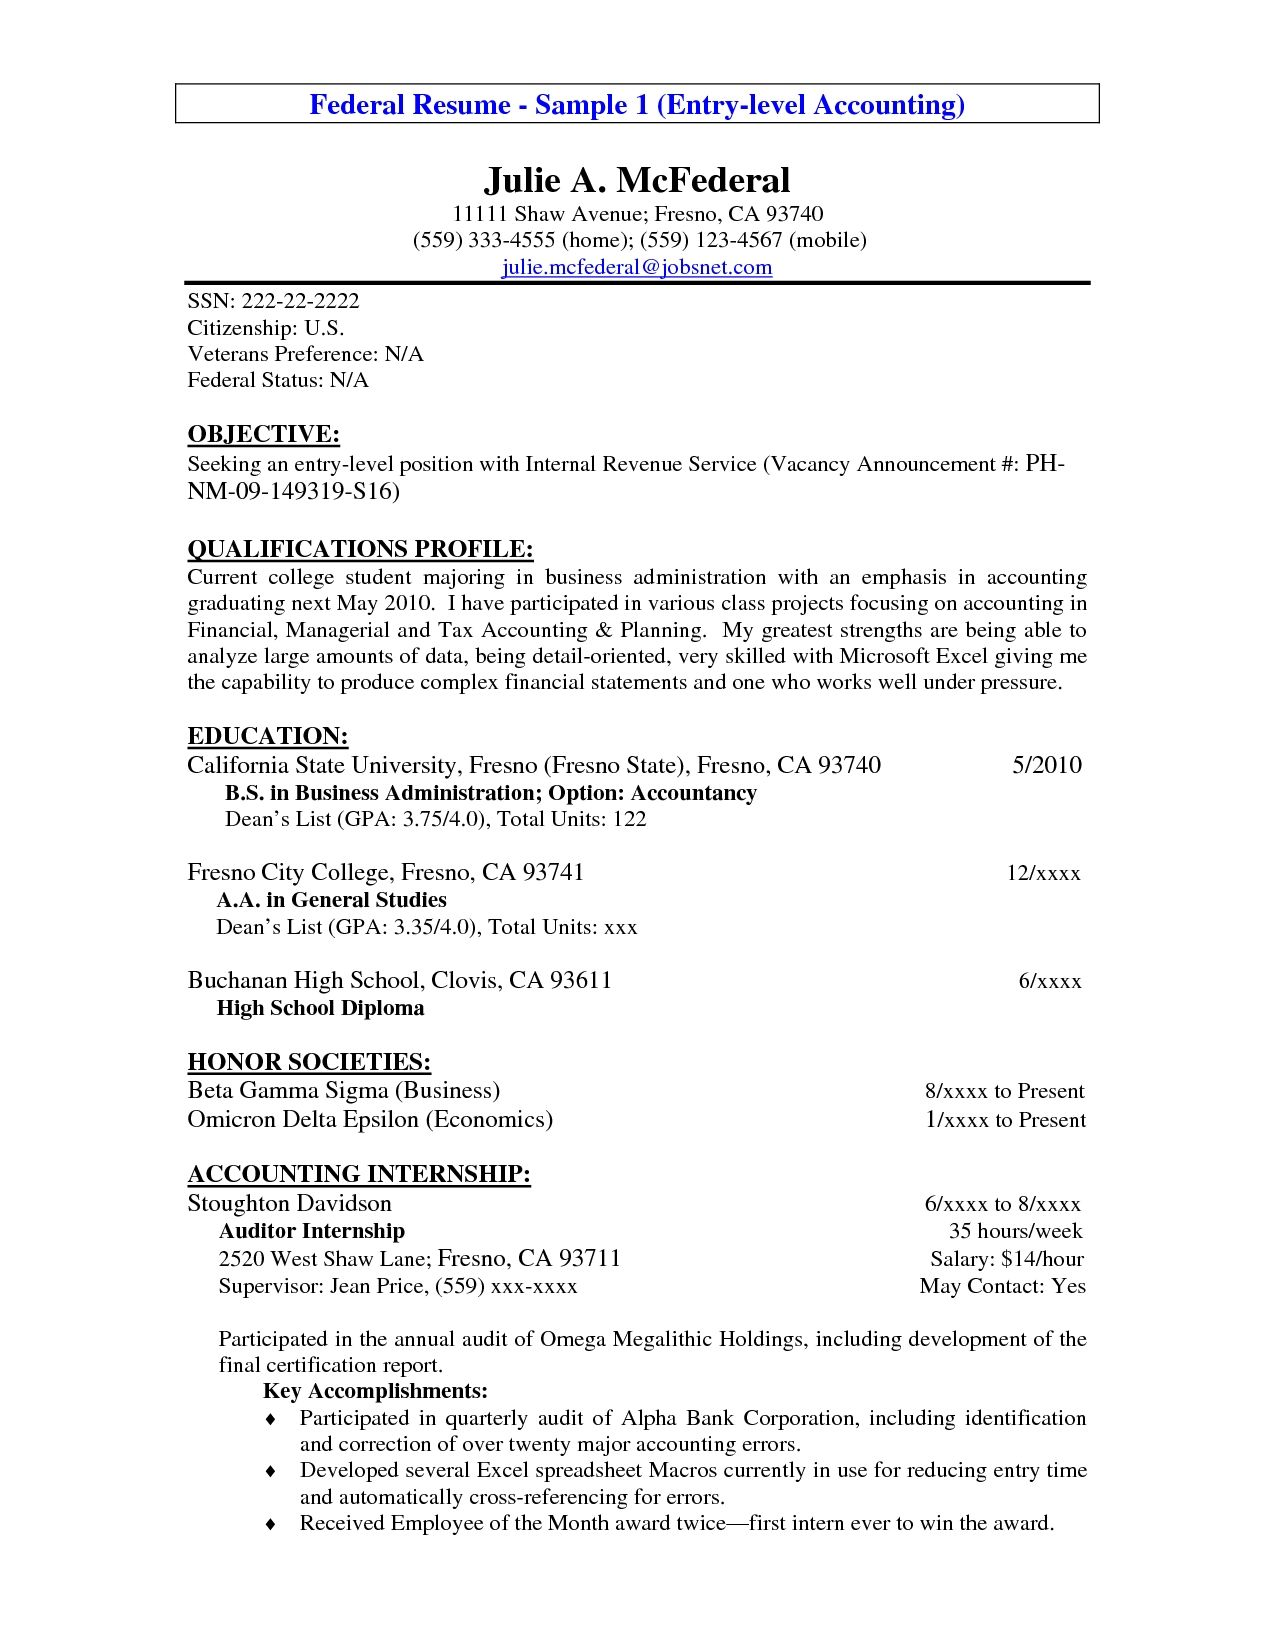 veteran resume sample entry level resume example accounting sample entry level resume example accounting sample gallery